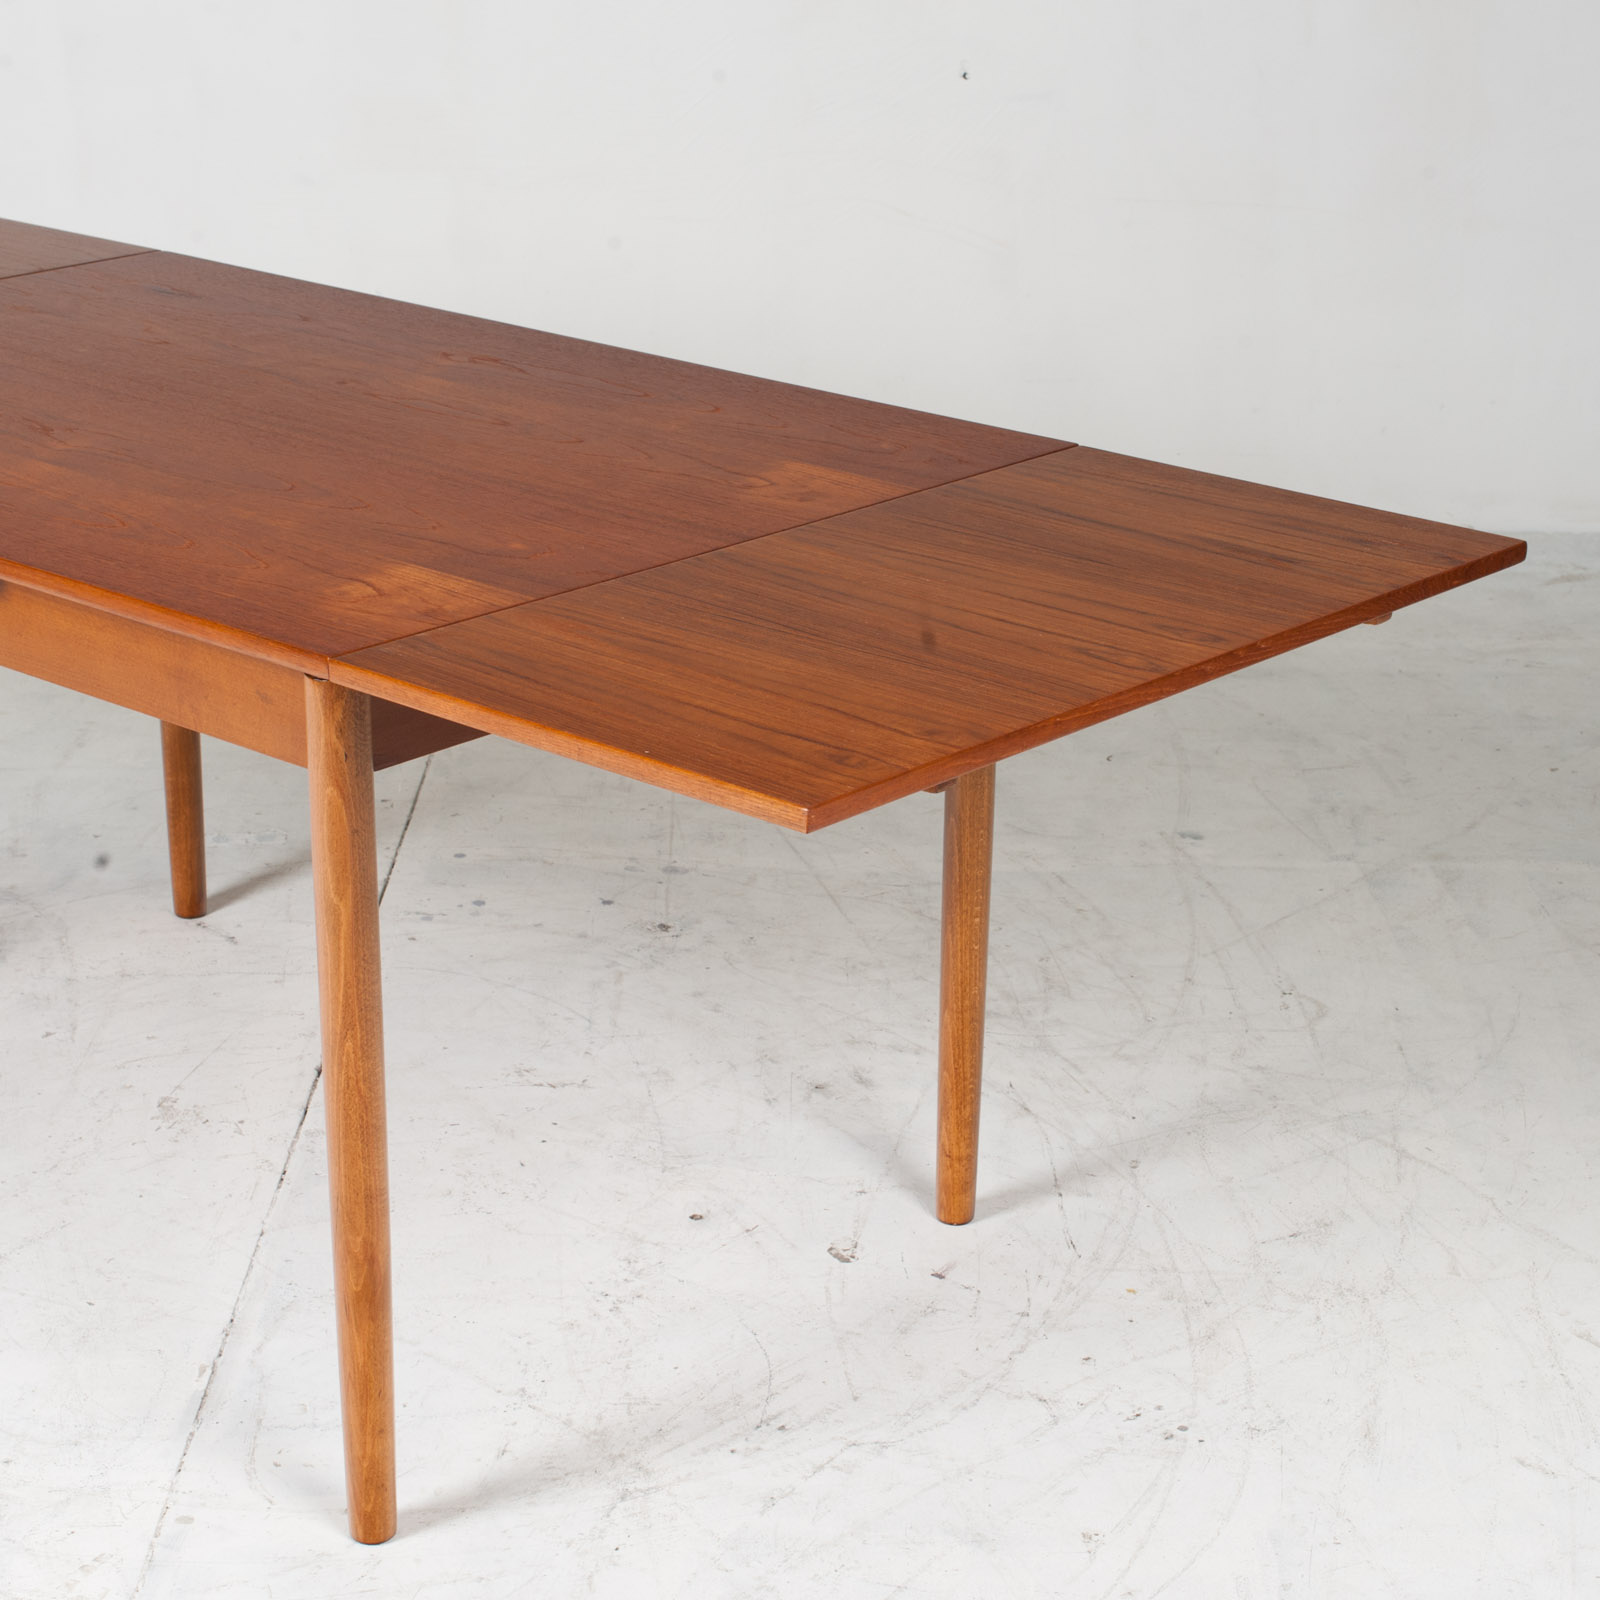 Rectangular Dining Table In Teak With Concealed Extentions 1960s Denmark10